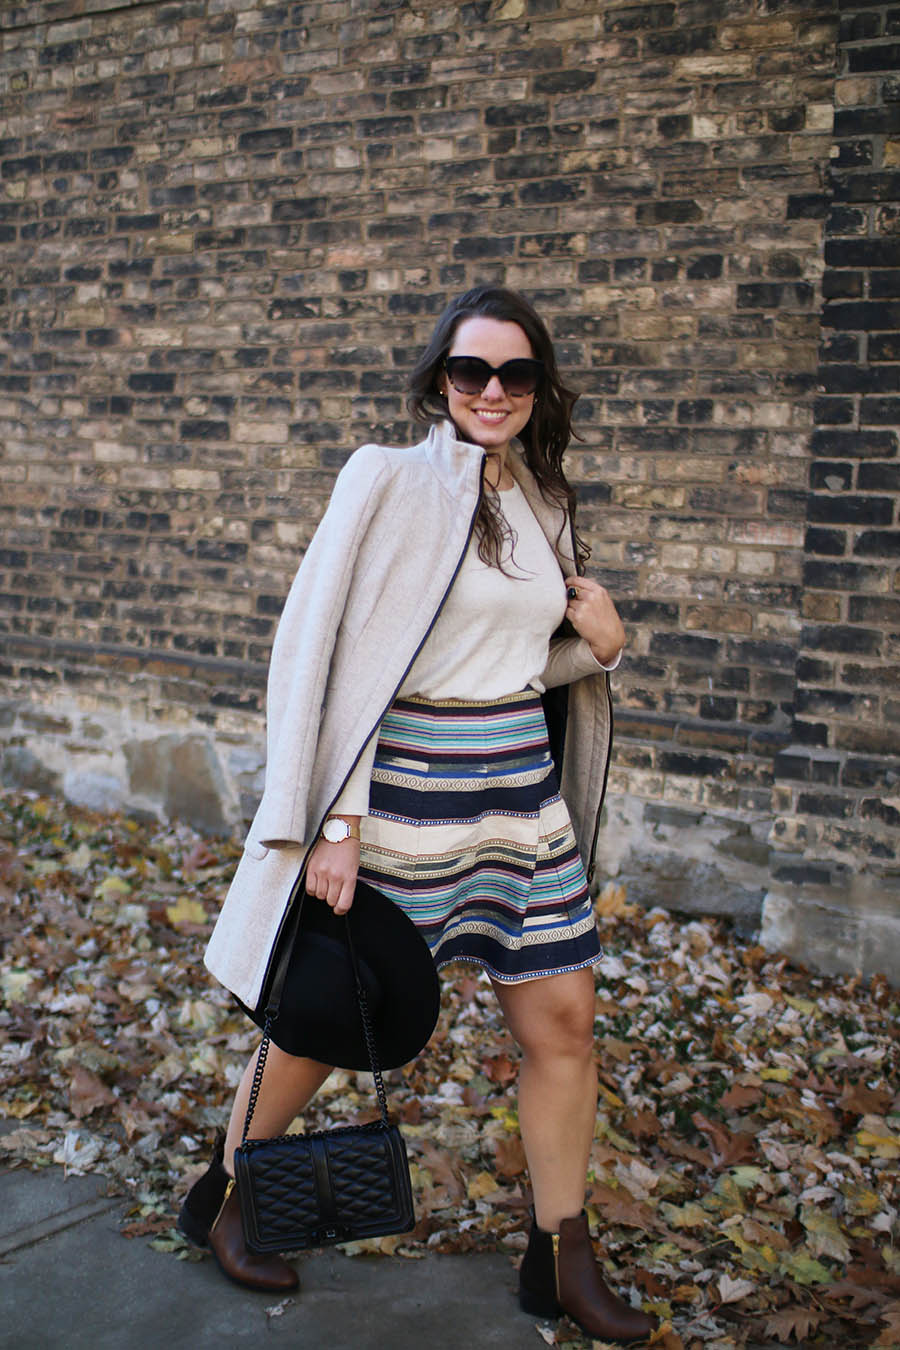 street-style-outfit-ideas-toronto-fashion-blogger-a-side-of-vogue